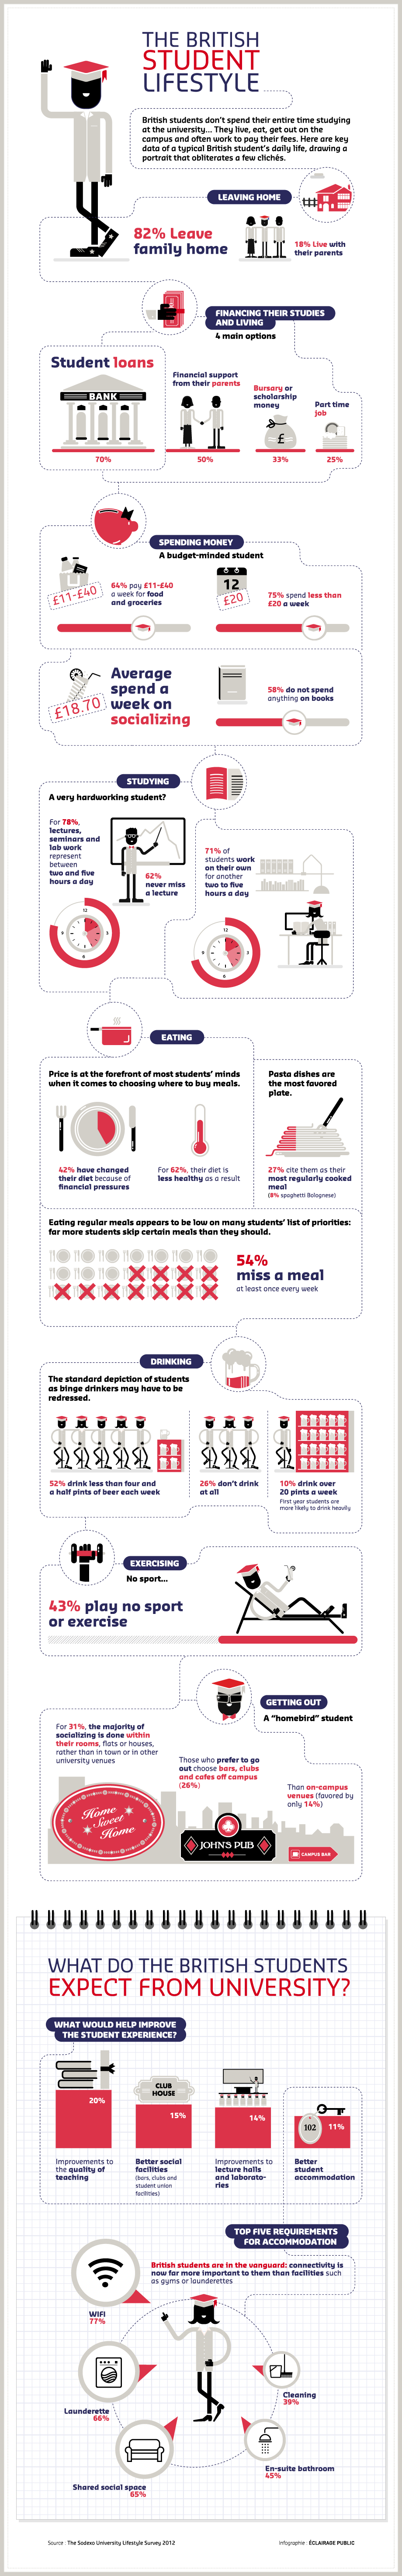 2 infographie-SODEXO-051113-920